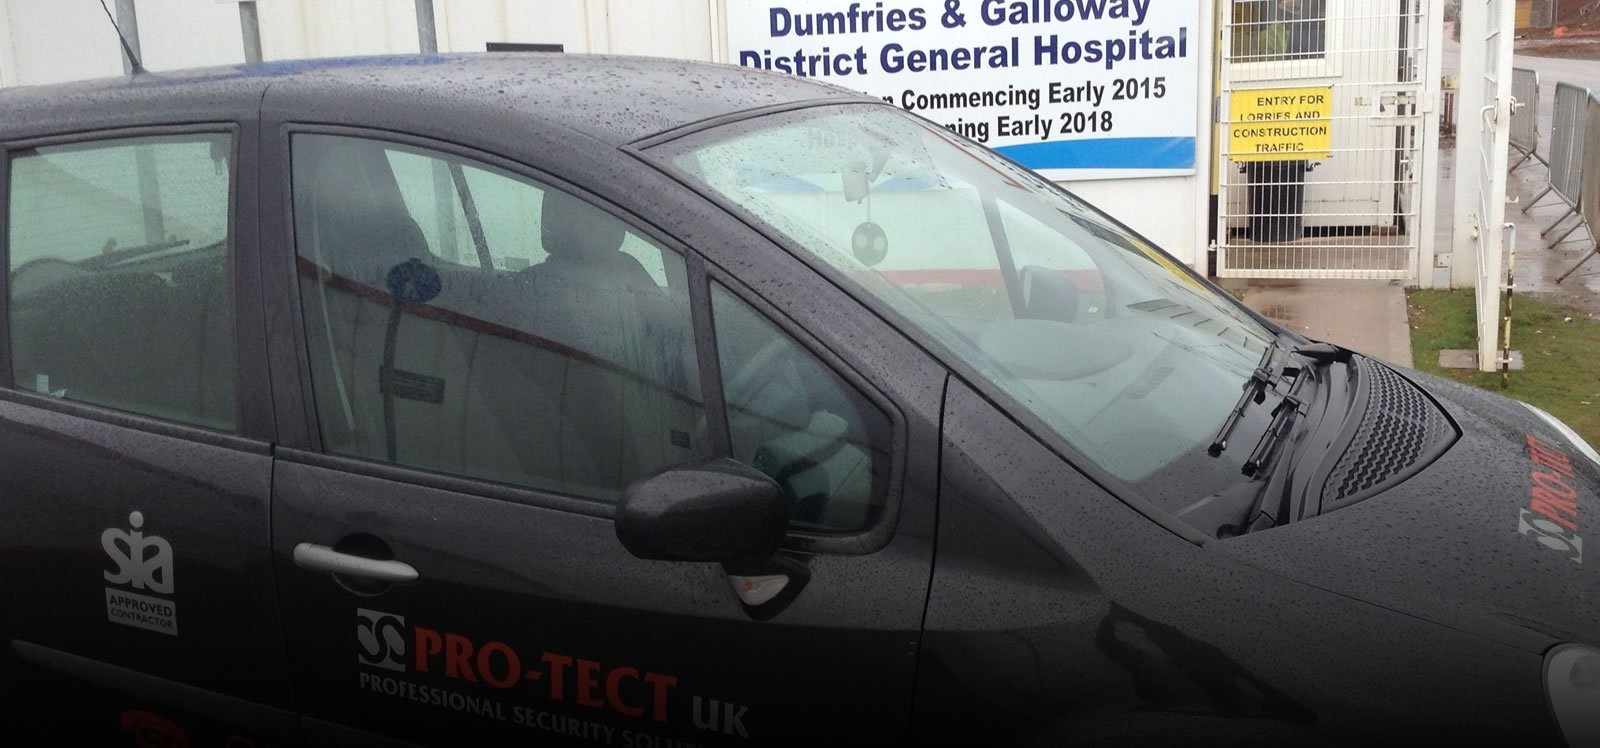 facilities management services dumfries